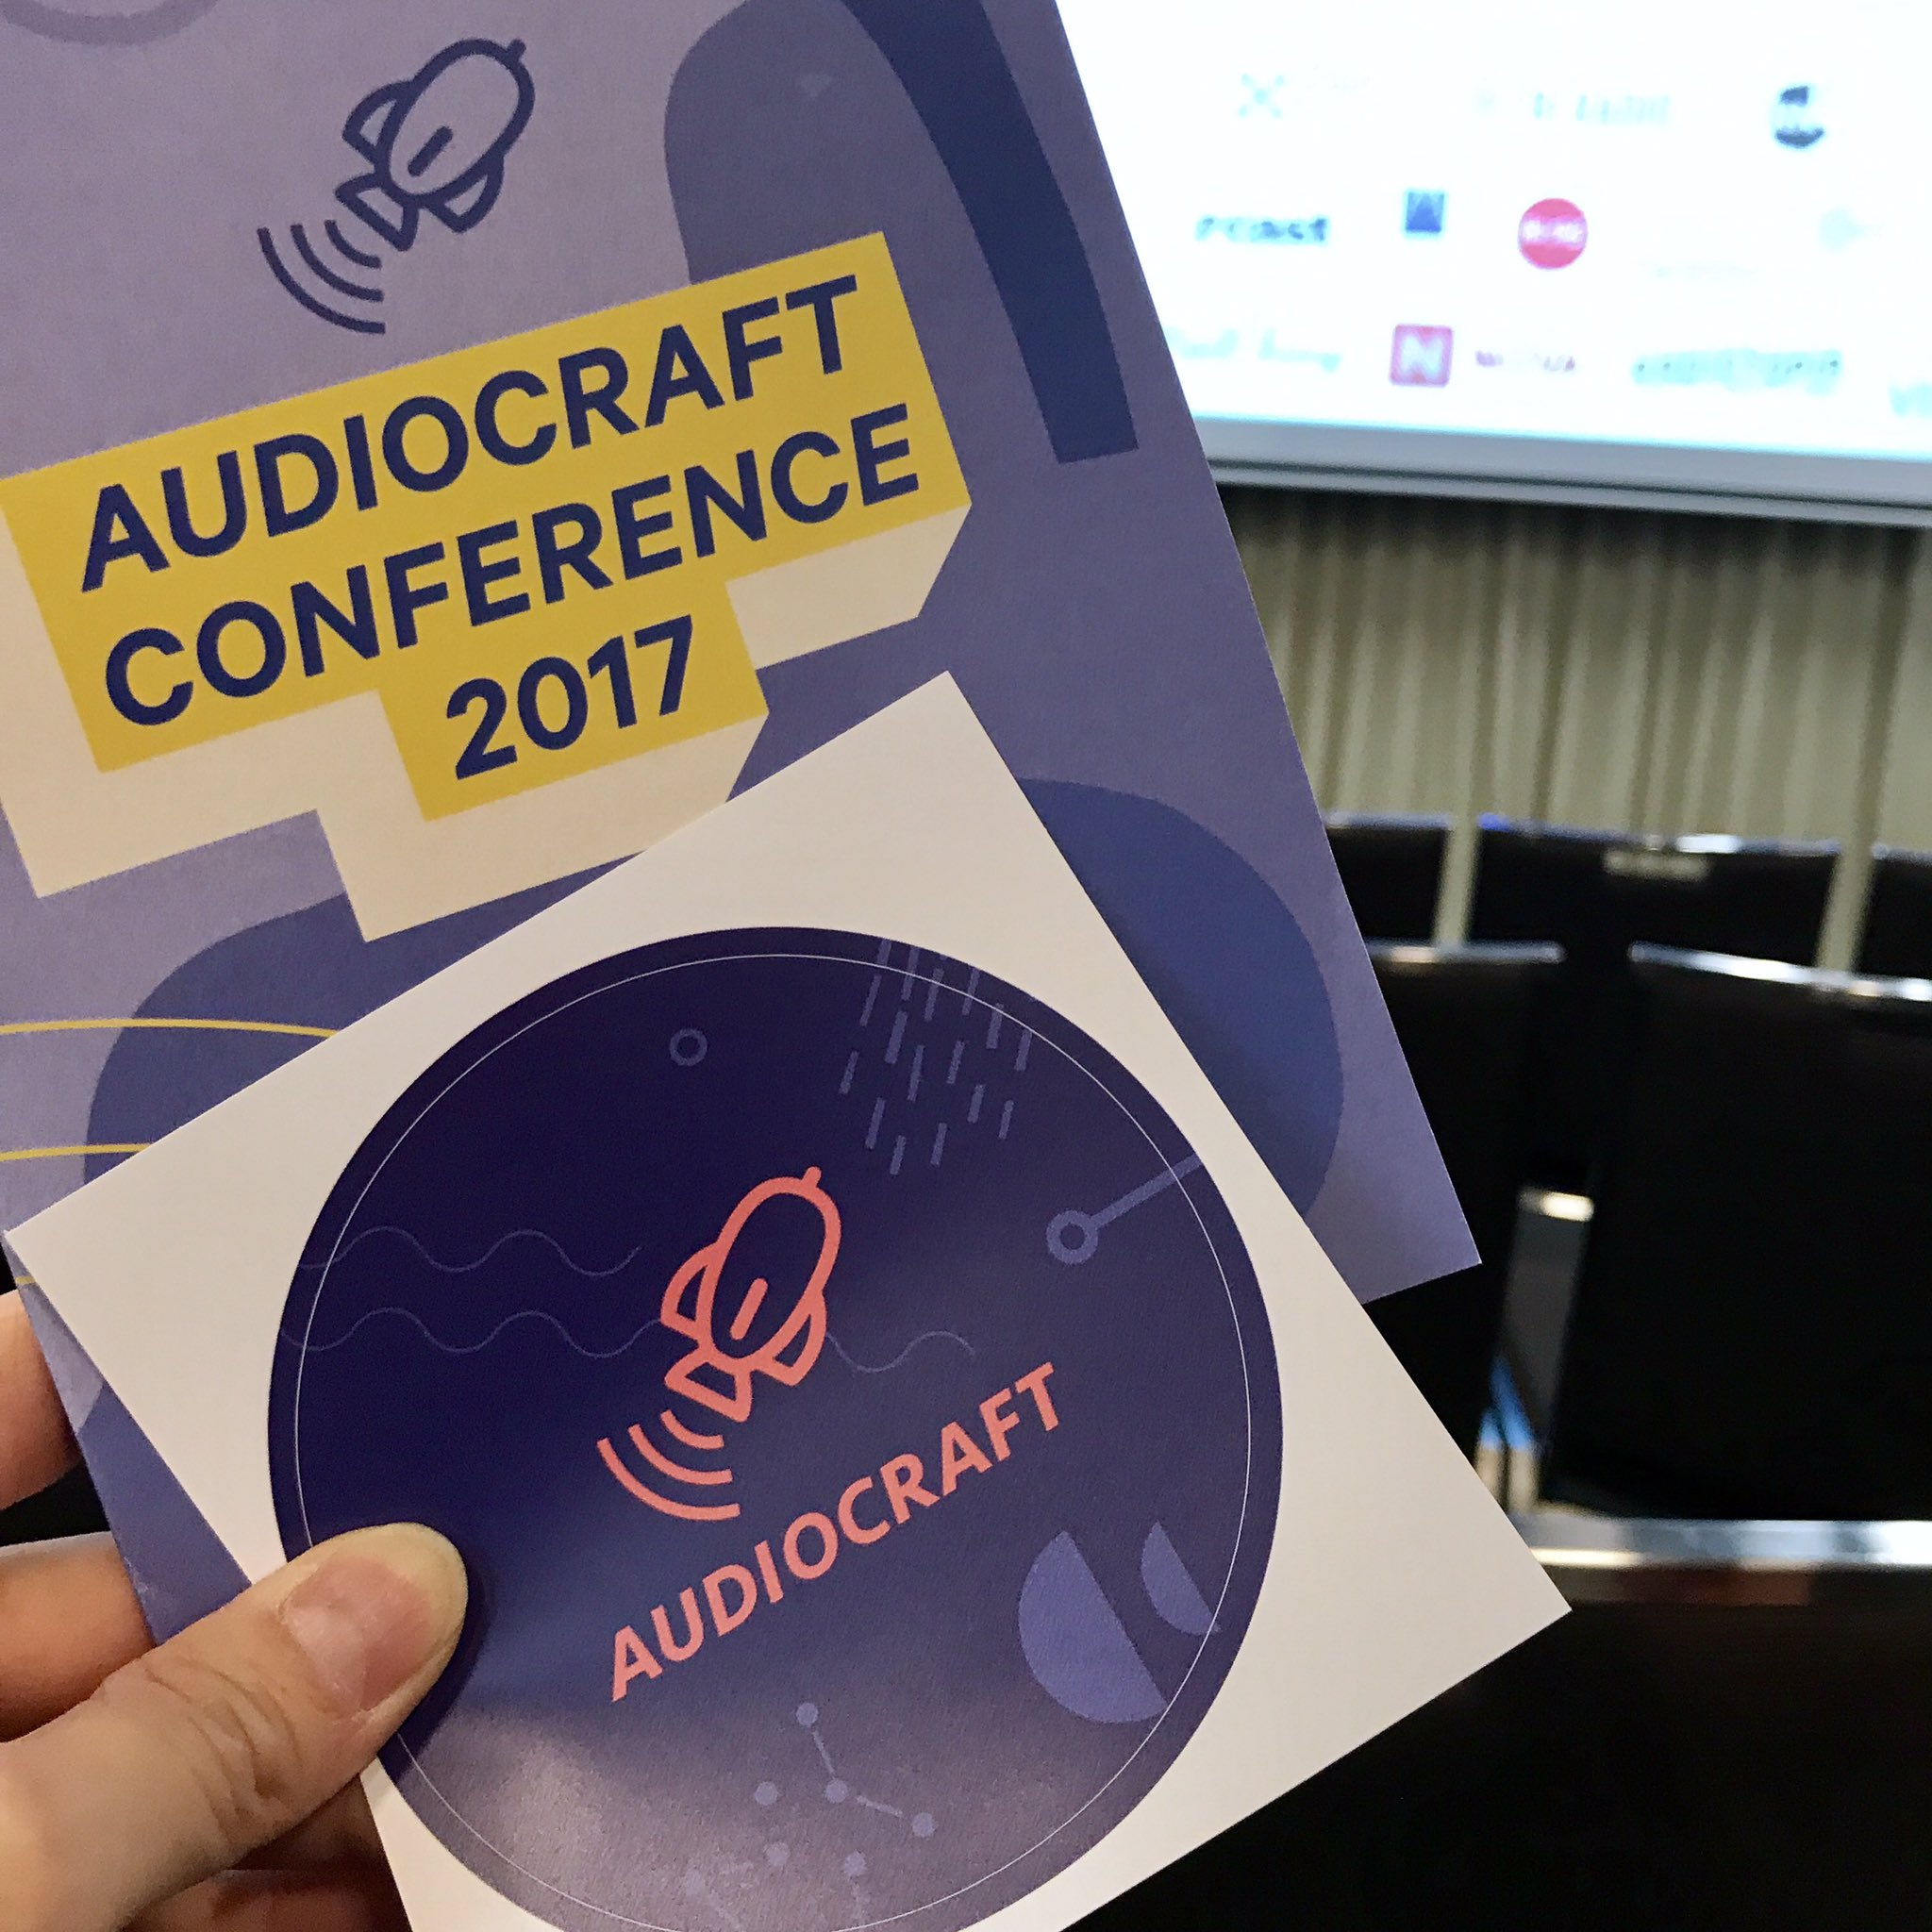 Thumbnail for Highlights From AudioCraft 2017 Conference - Part One